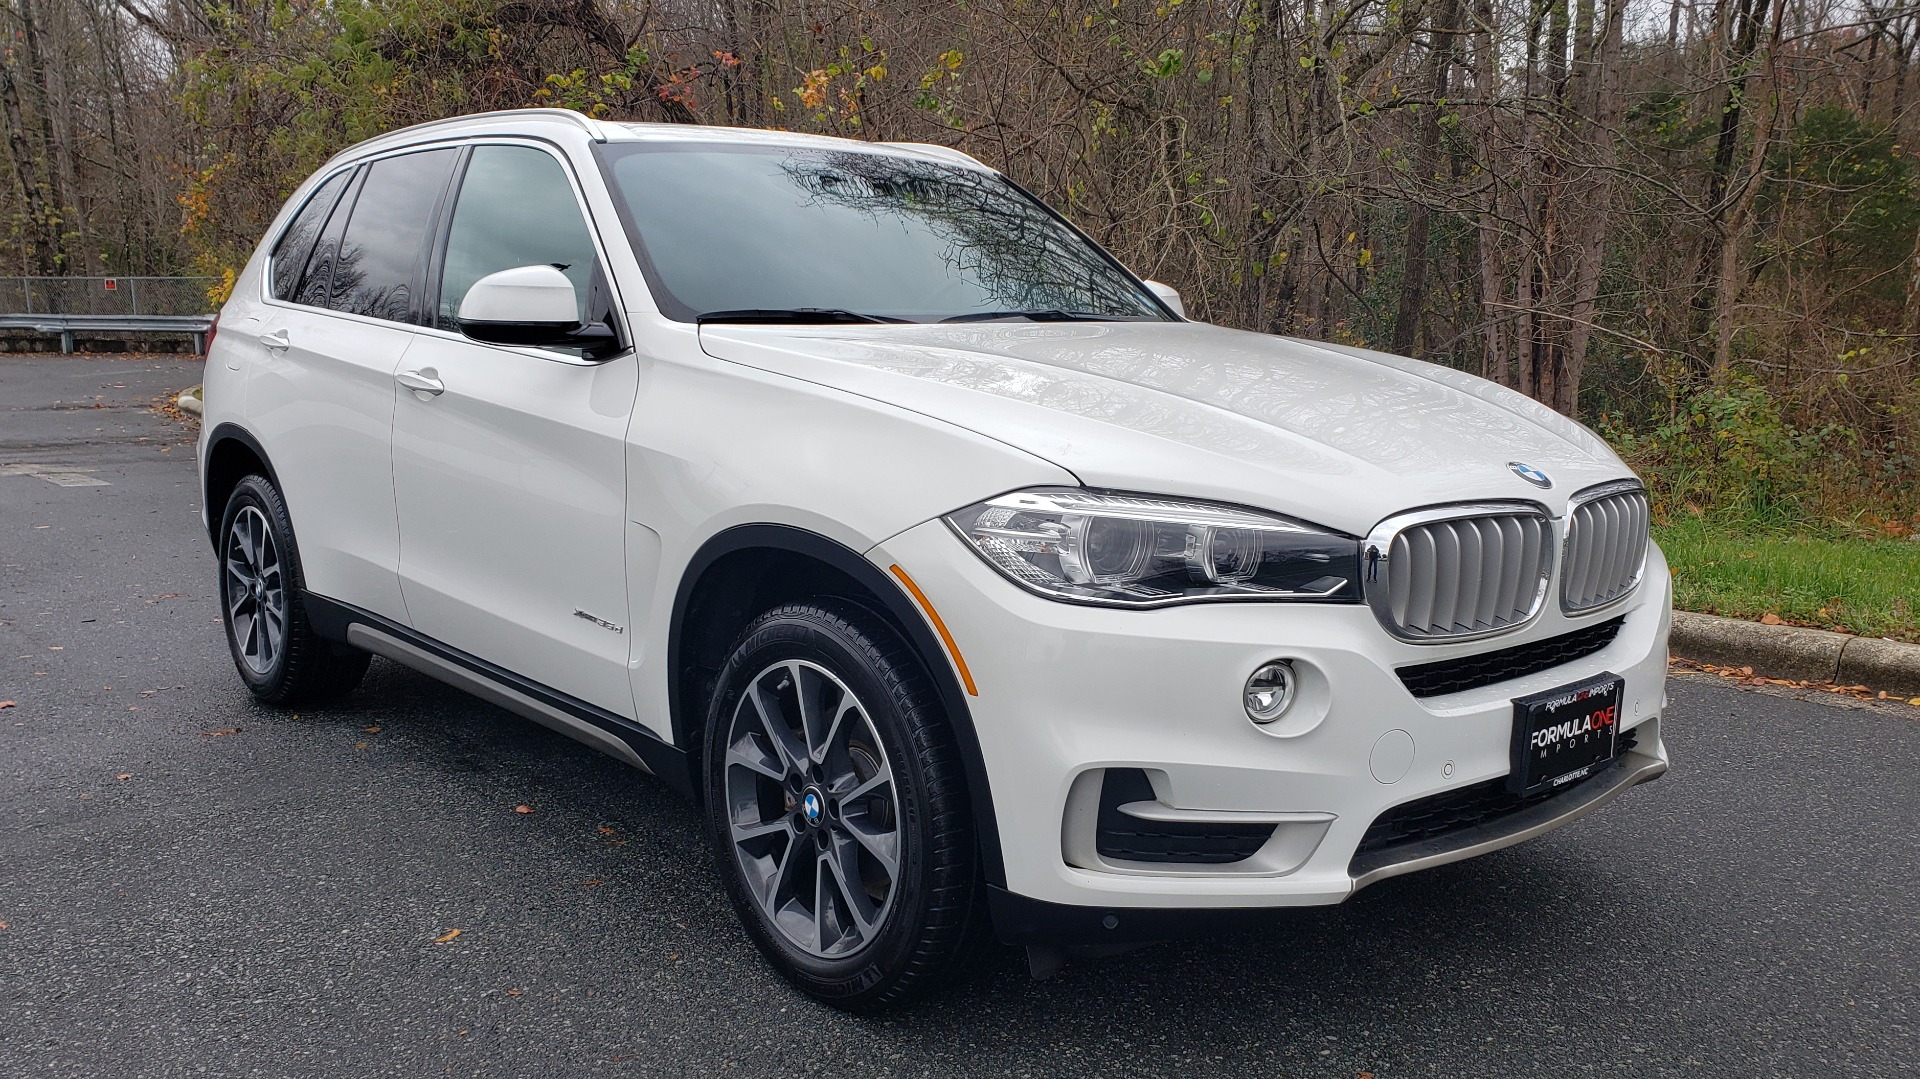 Used 2017 BMW X5 XDRIVE35D / AWD / NAV / DIESEL / SUNROOF / REARVIEW for sale $34,595 at Formula Imports in Charlotte NC 28227 4